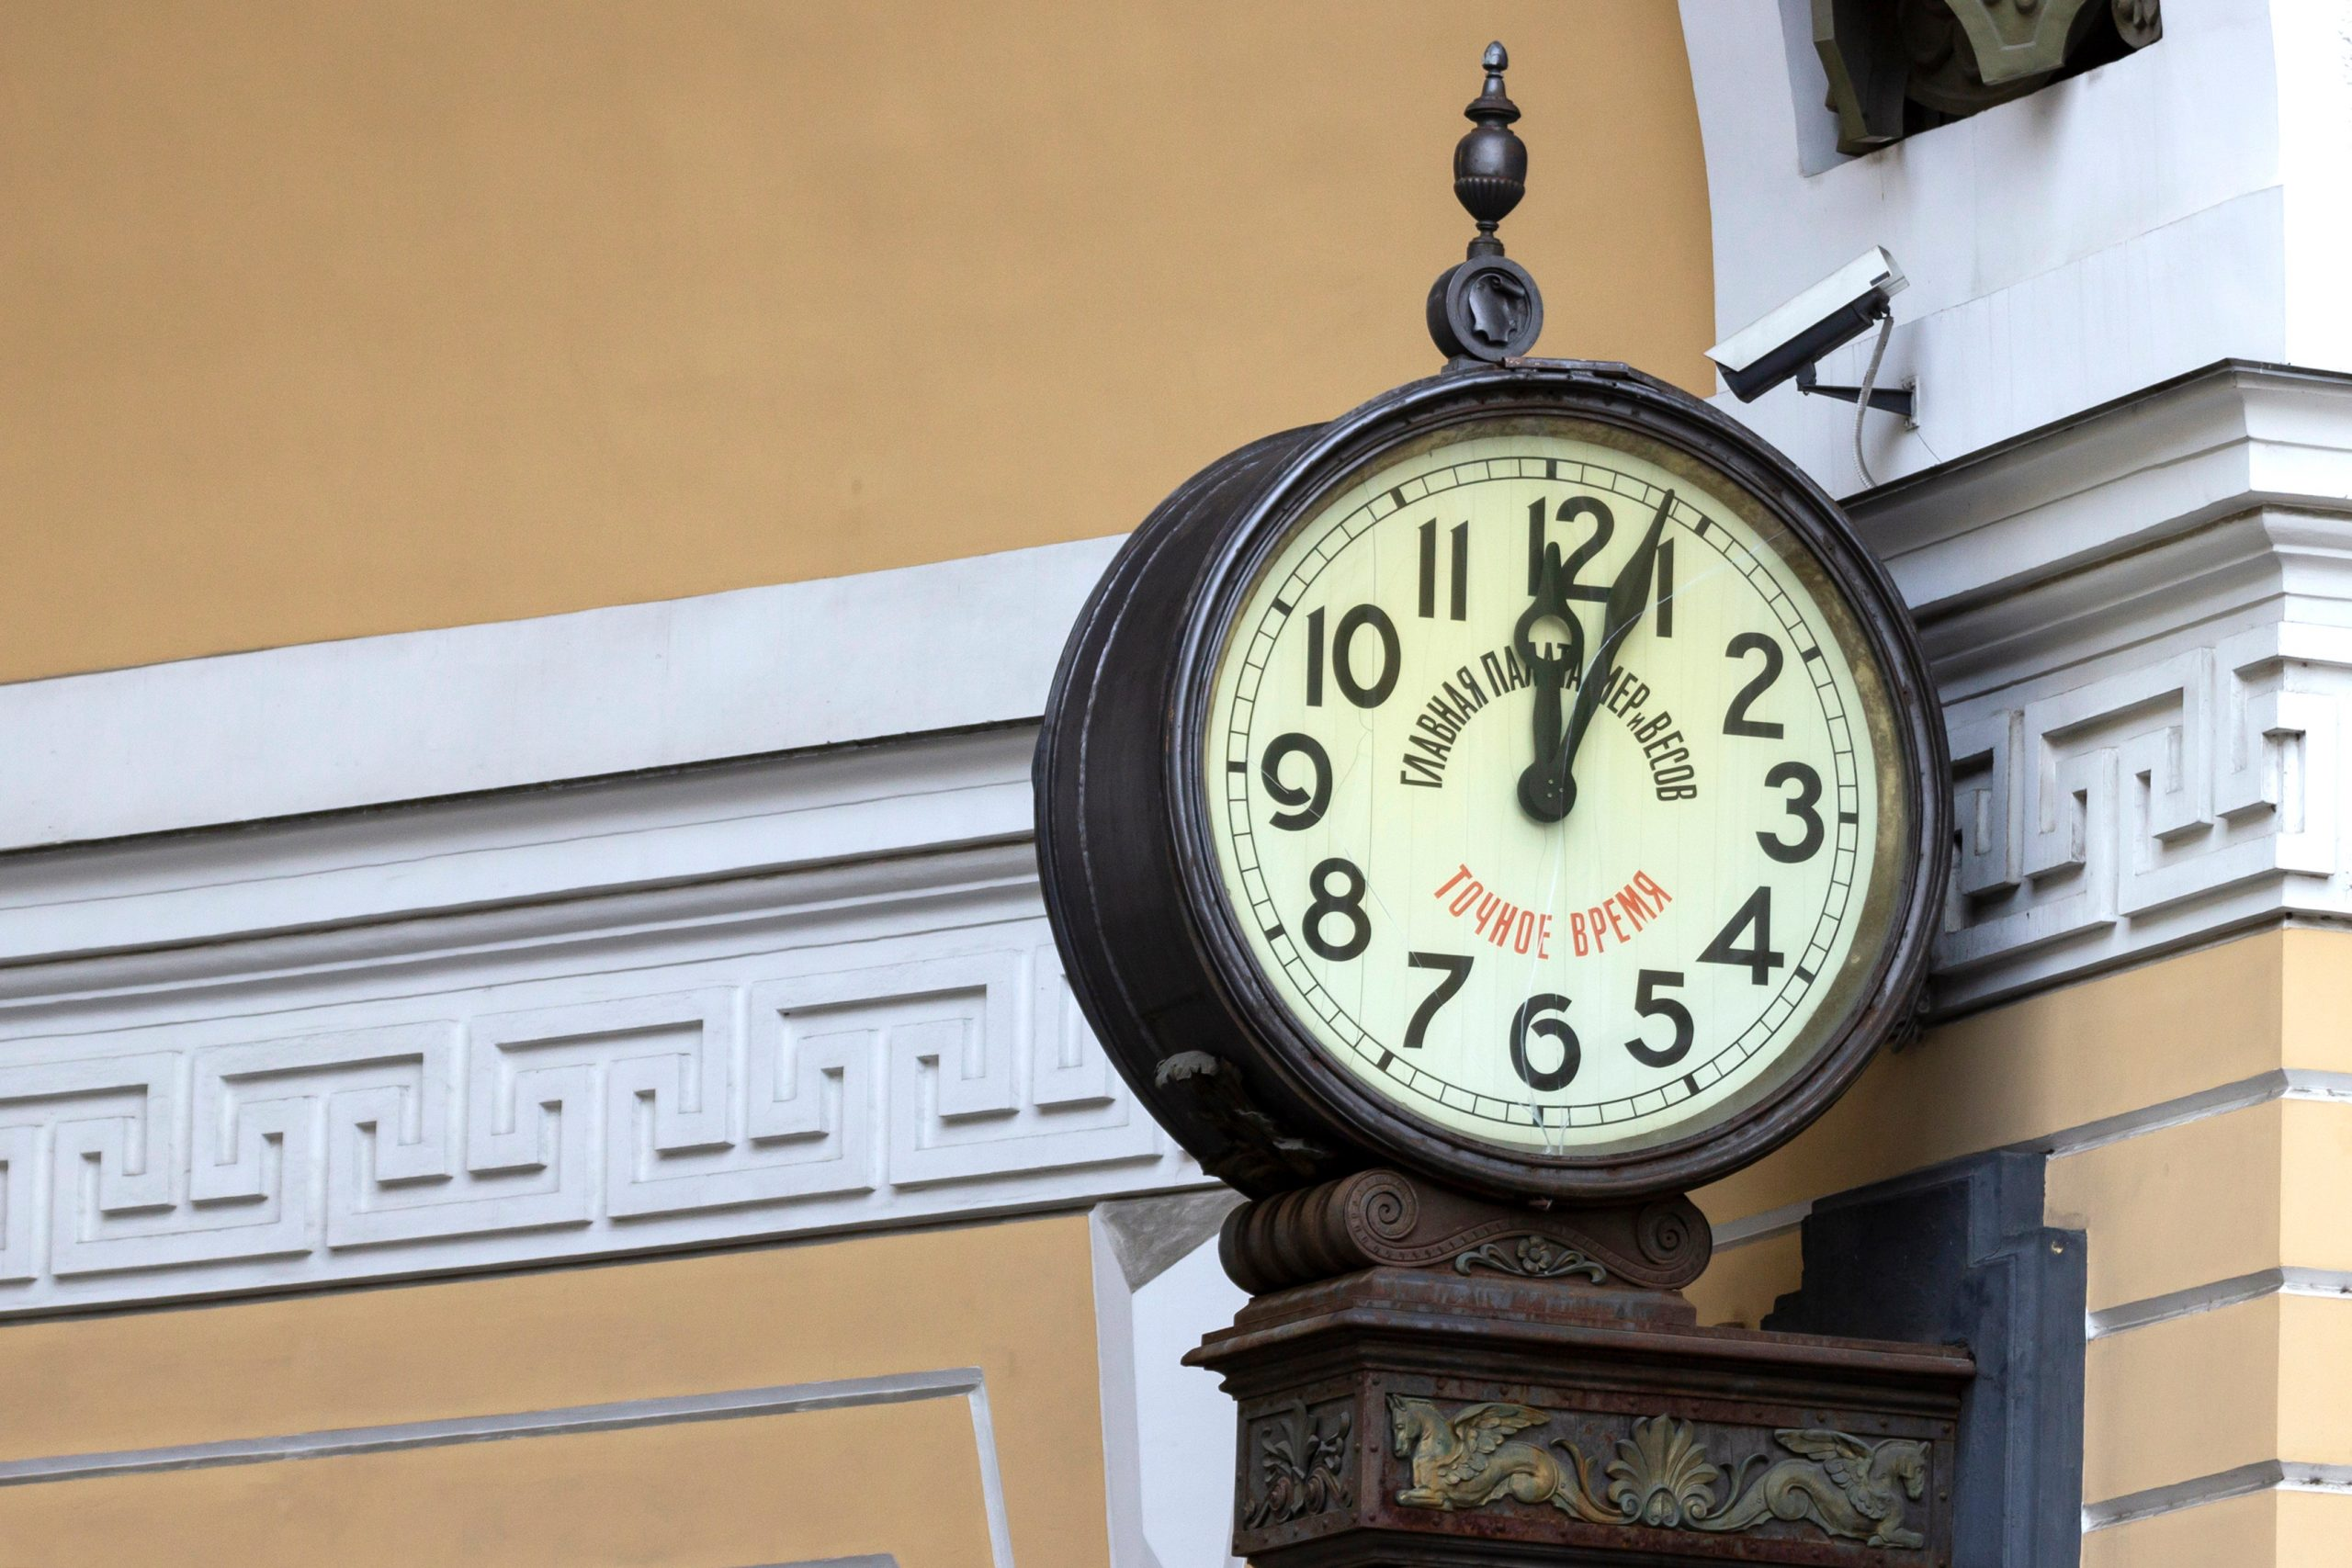 Time in Russian